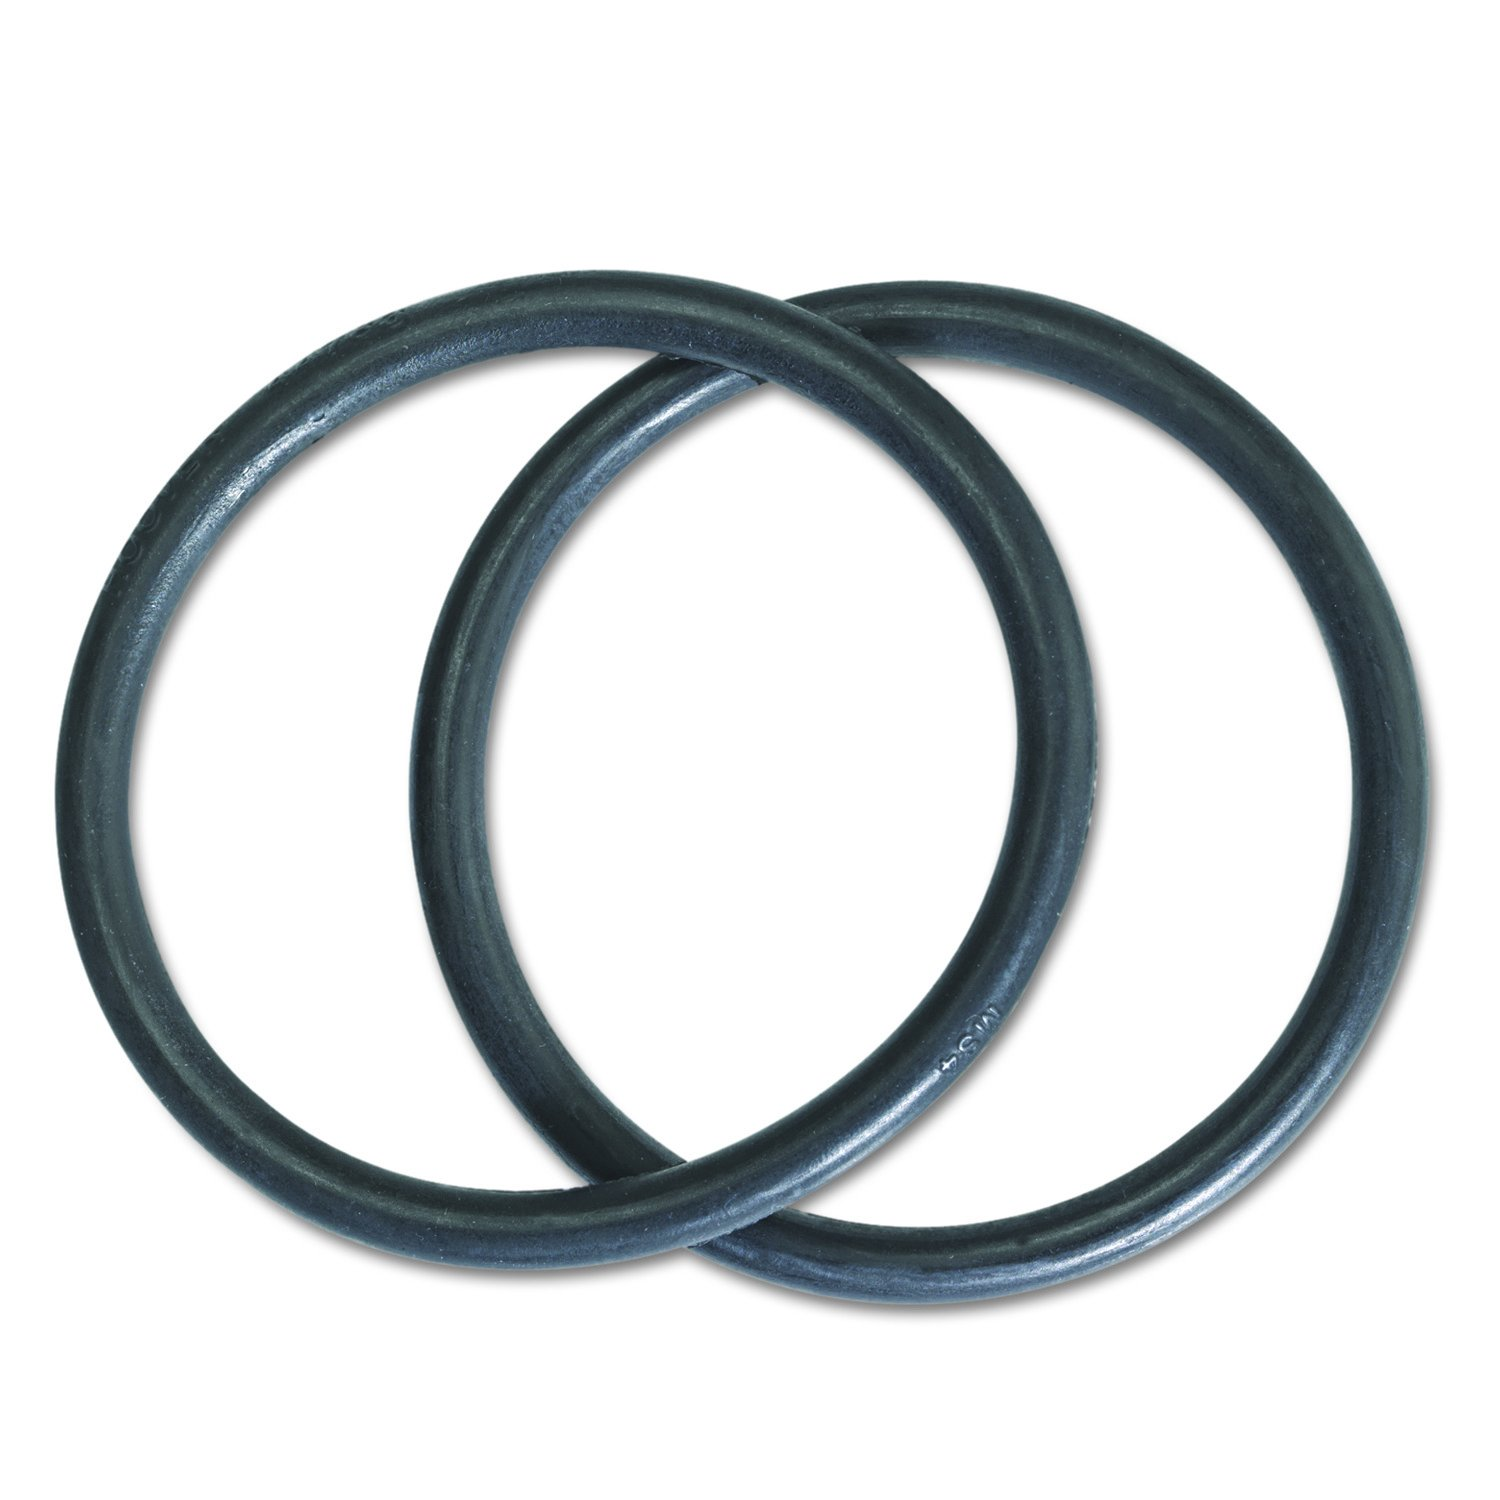 Replacement Belt for Guardsman Vacuum Cleaners, 2/PK Hoover HVRAH20075 COUHVRAH20075